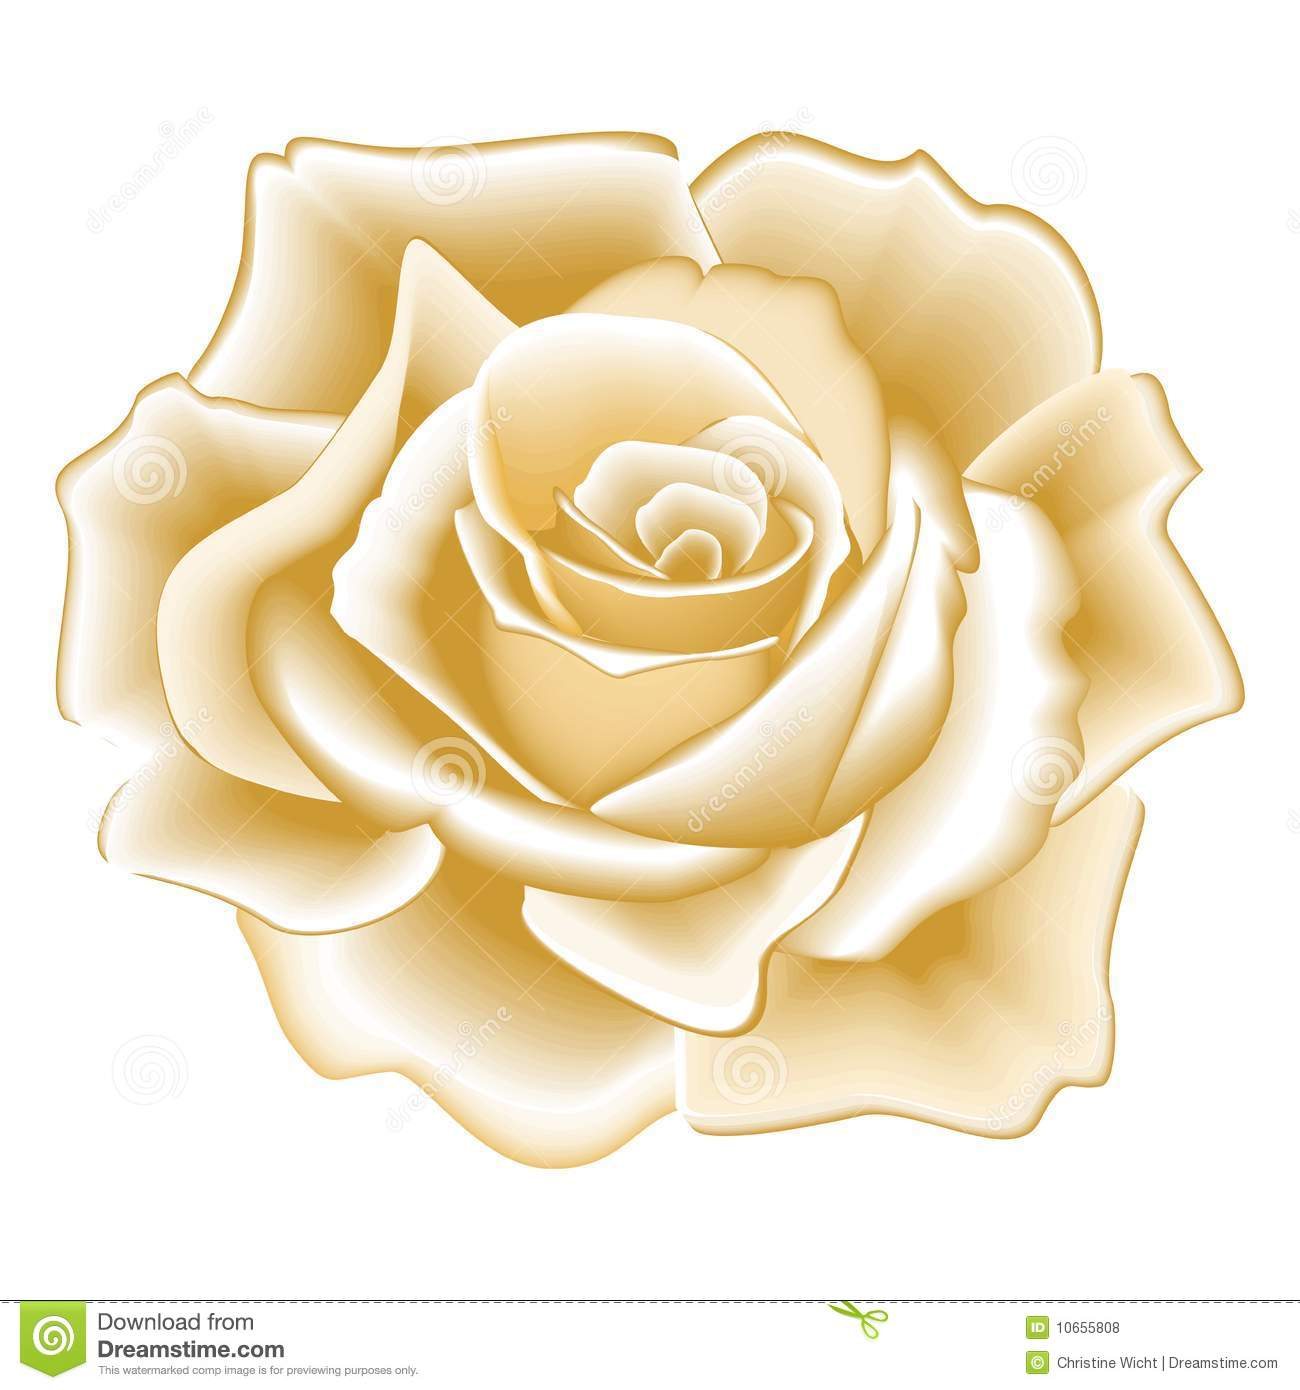 contour map with Royalty Free Stock Photos Golden Rose Image10655808 on St clair map likewise Stock Photography Fruits Background Frame Made Colorful Image34582682 additionally Stock Illustration Bracelet Coloring Page Useful As Book Kids Image52169242 also Nanjing Subway Map as well Stock Fotografie Zuid Holland Provincie Van Nederland Image18002802.